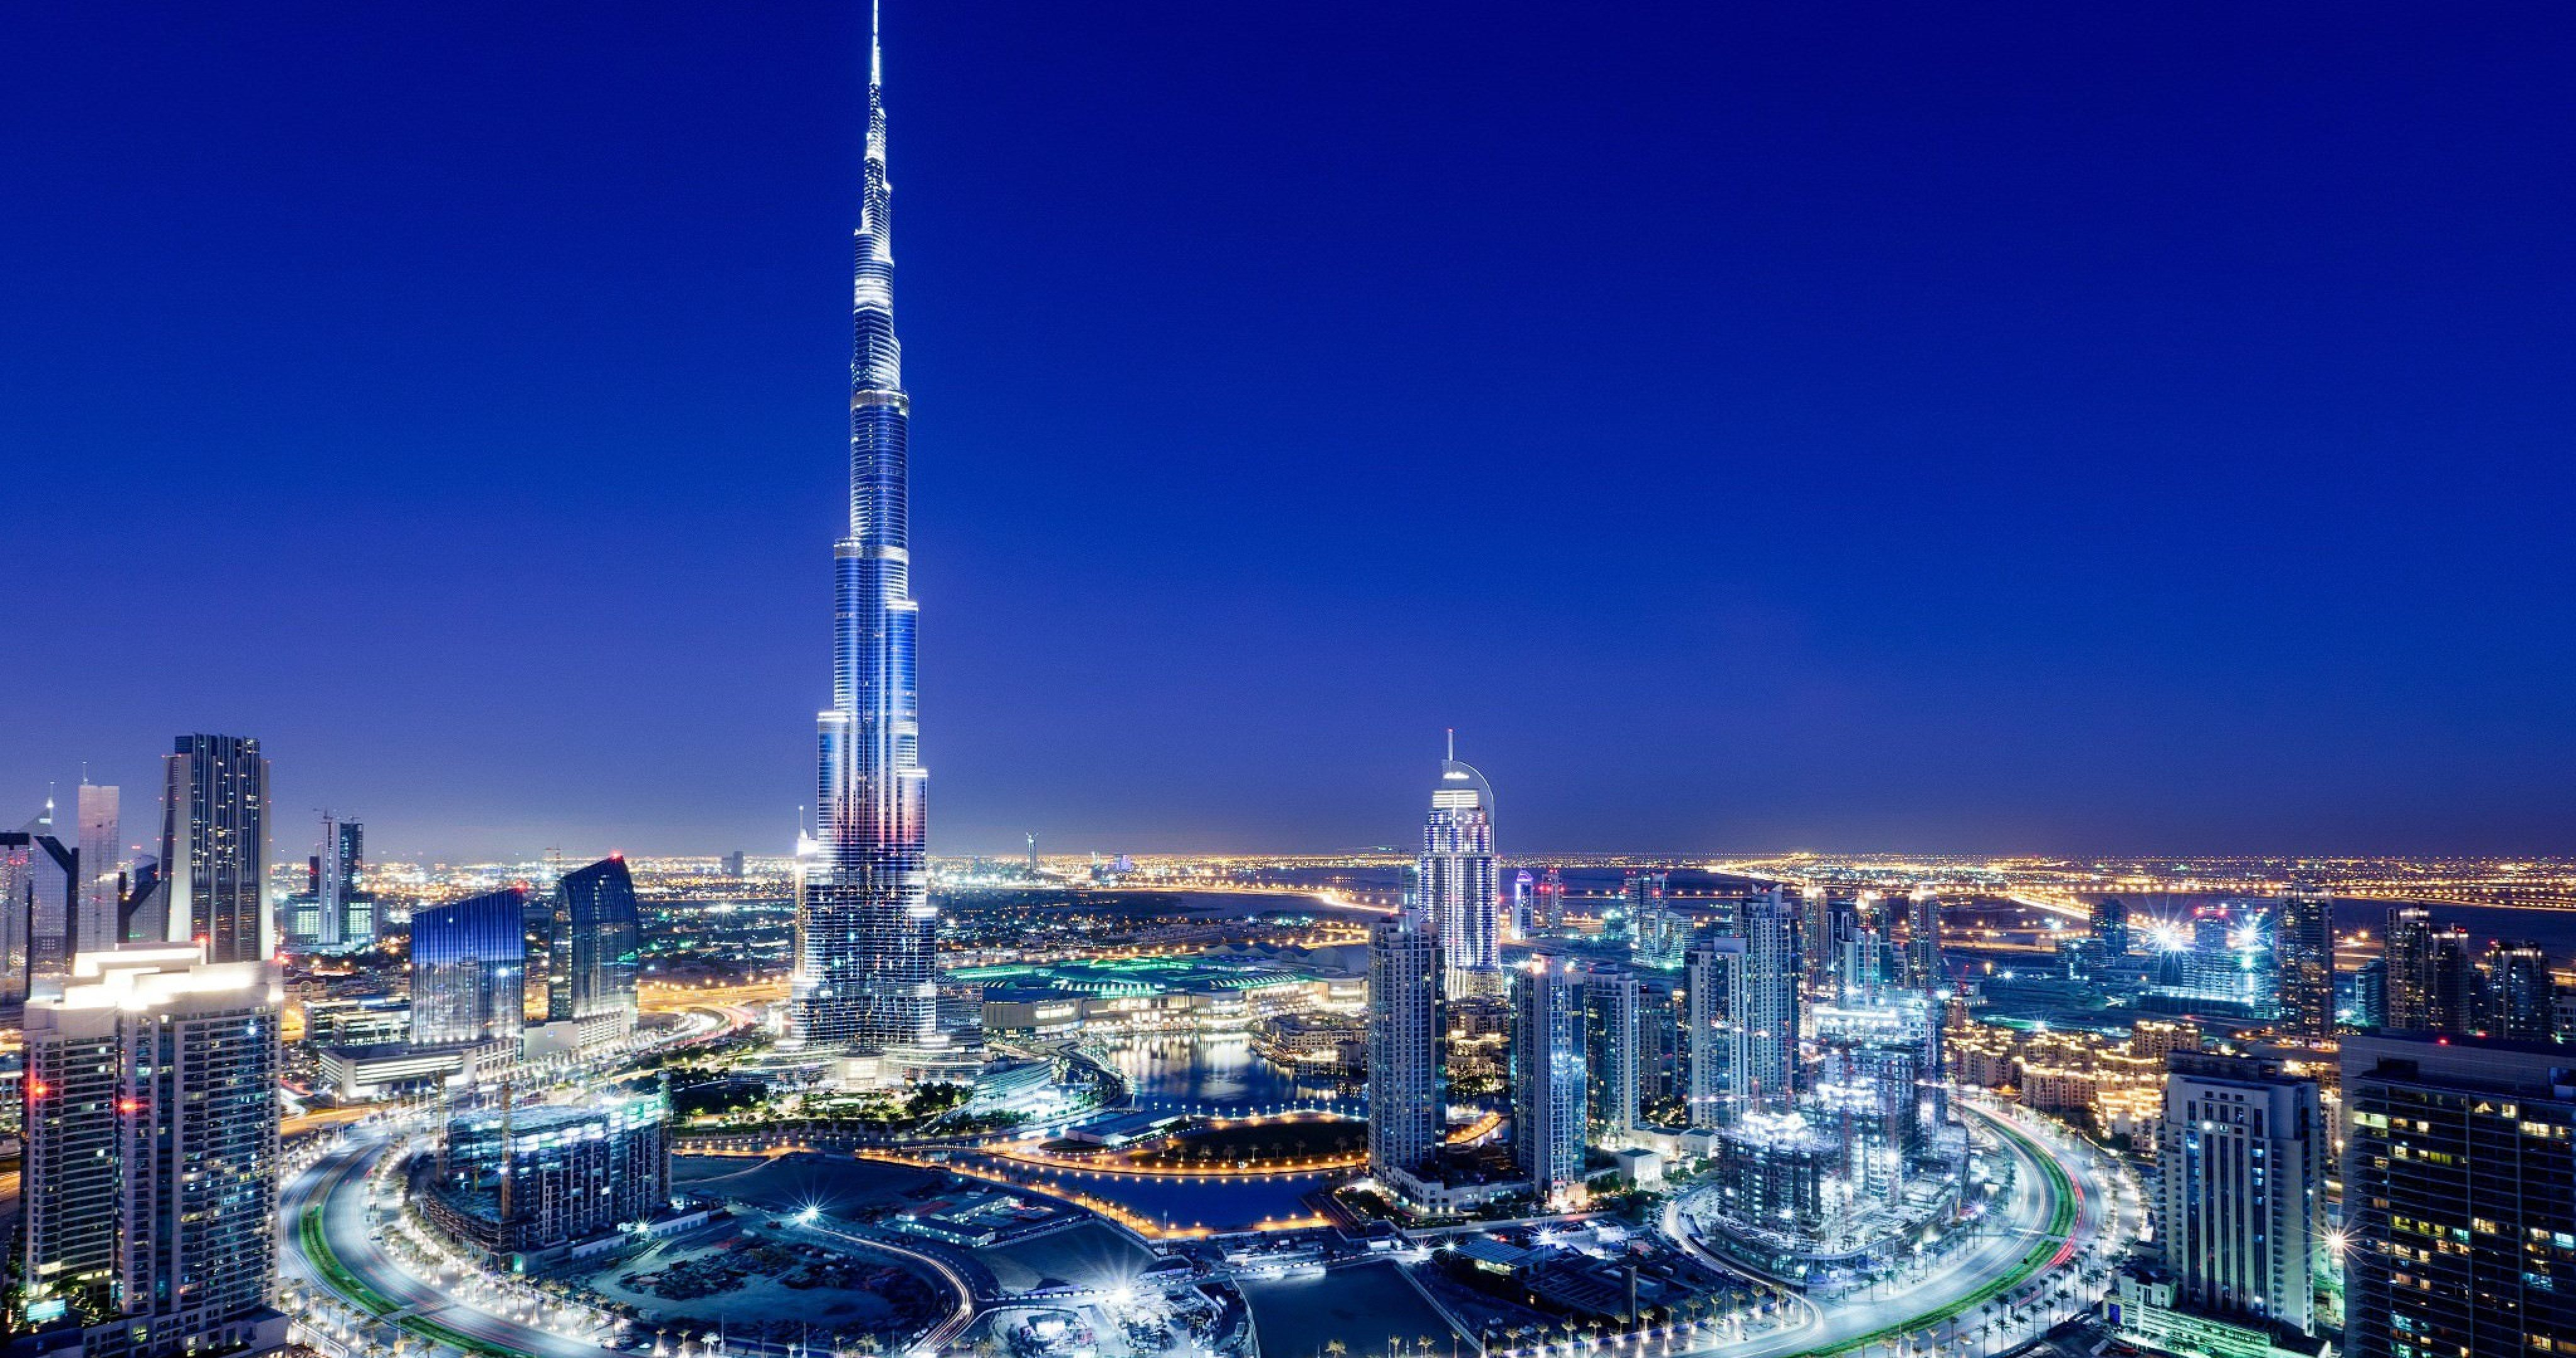 uae city of dubai 4k ultra hd wallpaper | ololoshenka | pinterest